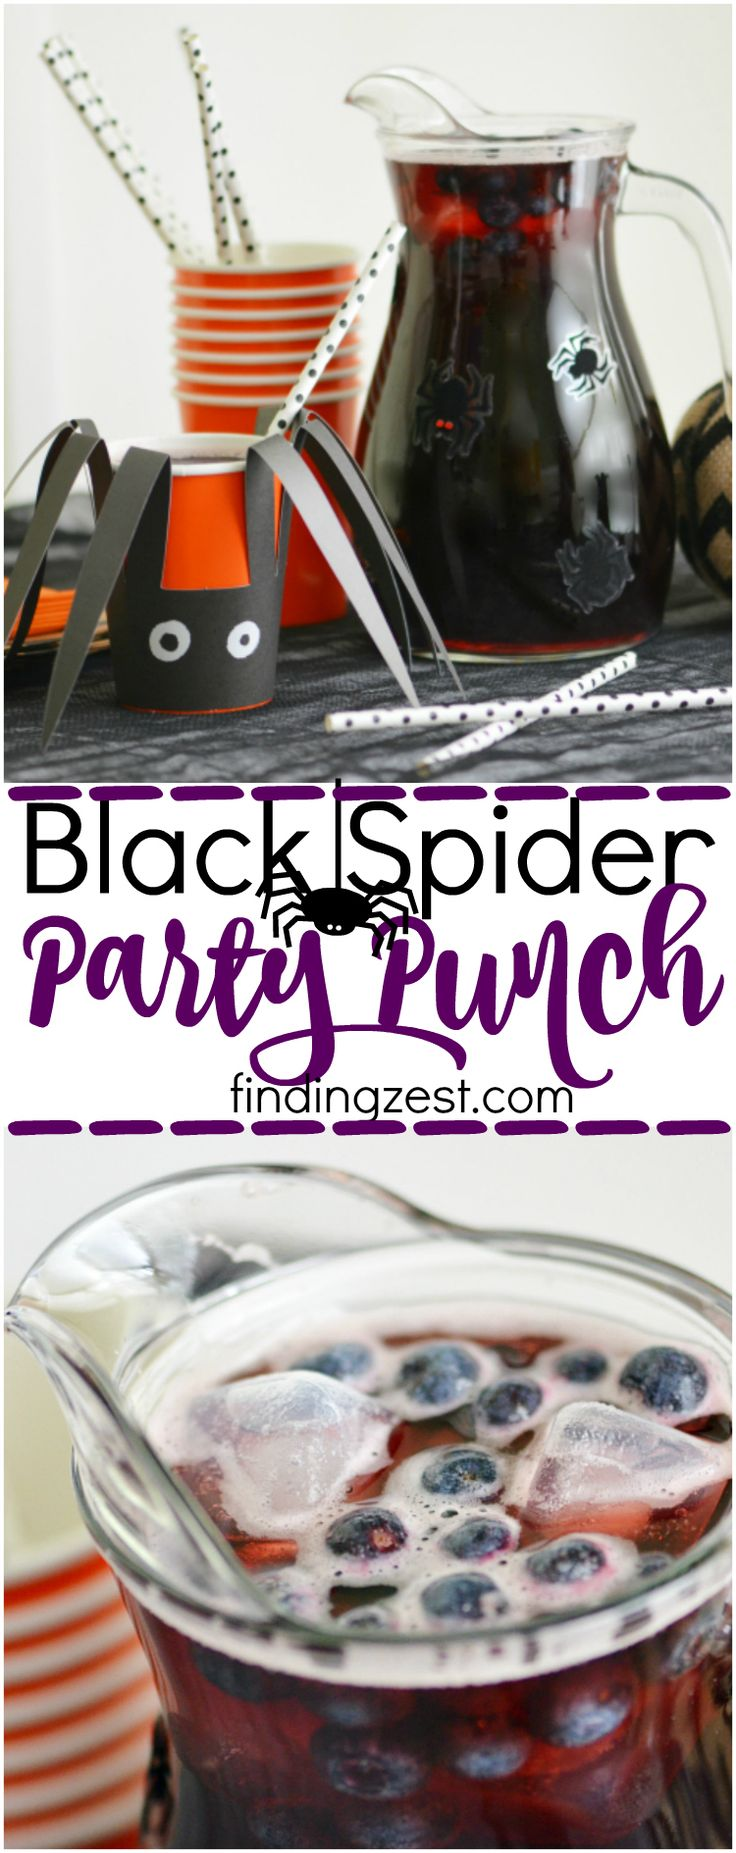 Black Spider Party Punch for Halloween: Serve up this easy Halloween punch in dressed up cups and pitchers to continue the spider theme!